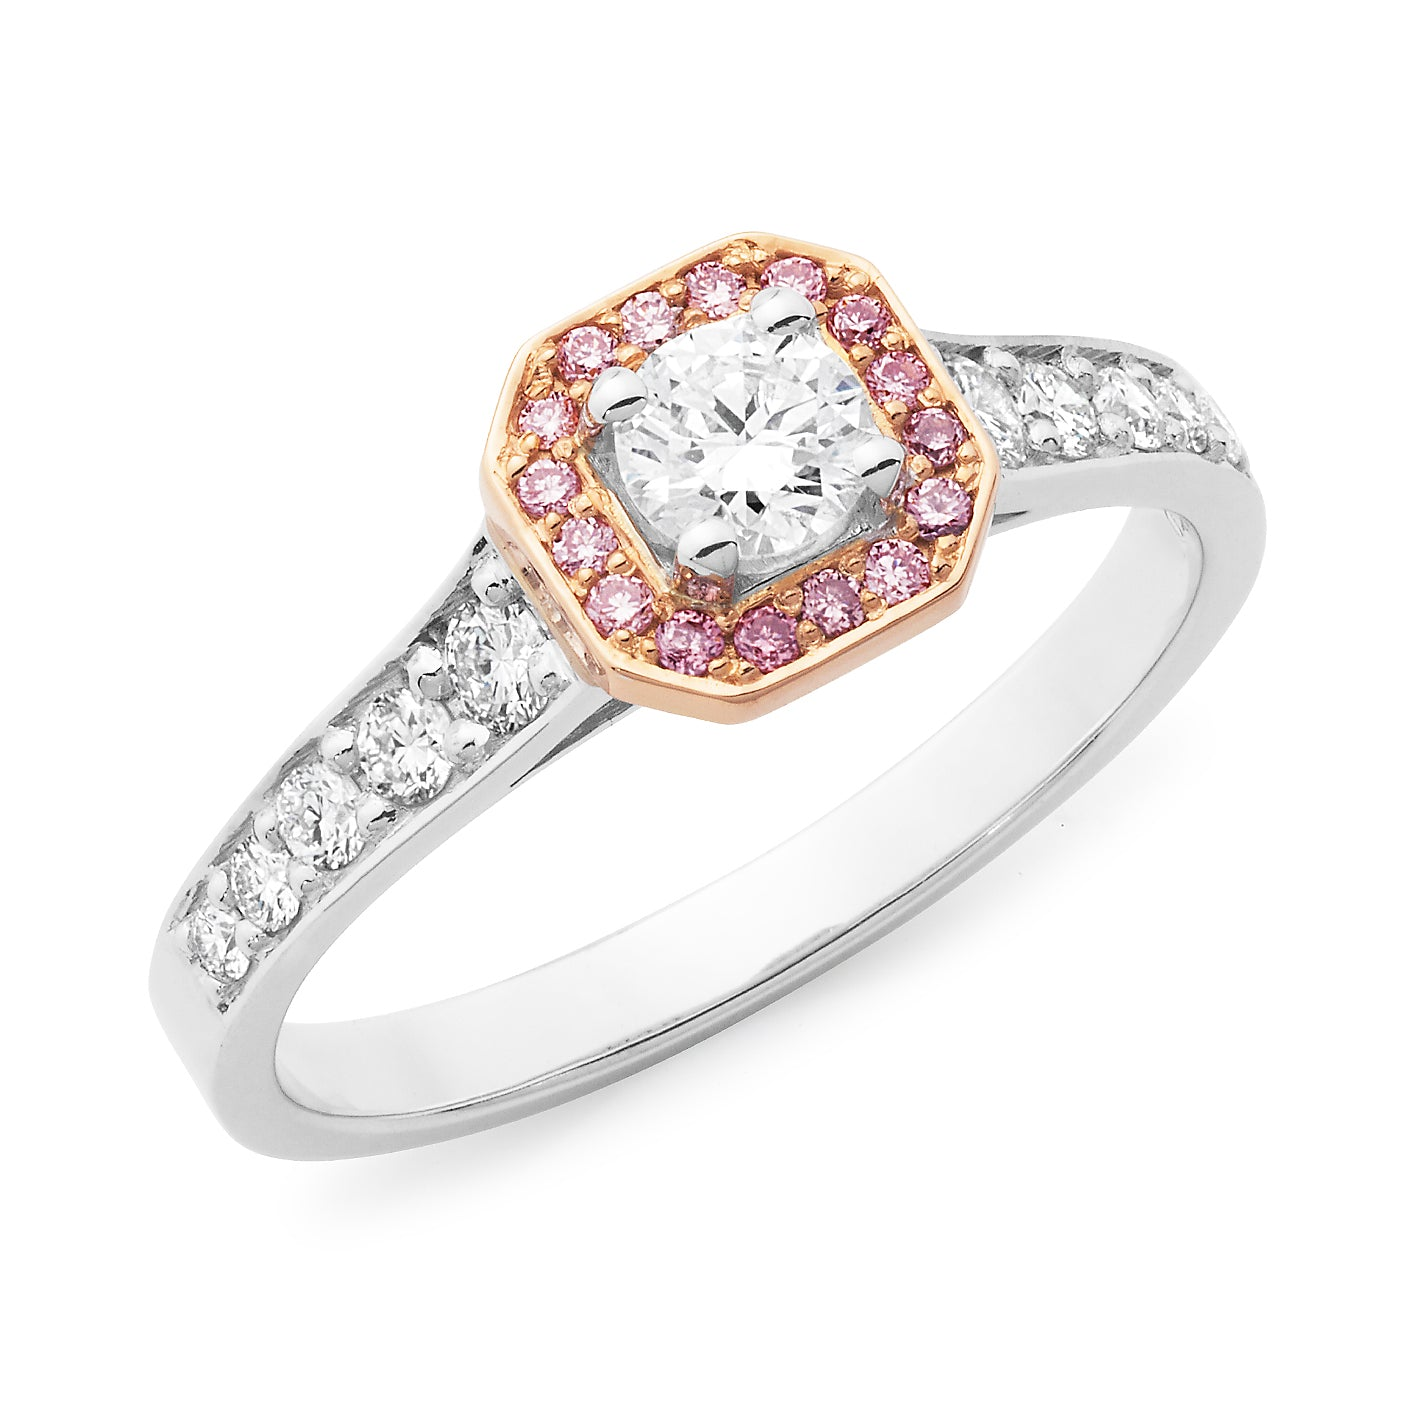 DIAMOND CLAW/BEAD SET RBC RING PINK CAVIAR IN 18CT WHITE & ROSE GOLD (0.25CT CENTRE, SI GH) TDW 0.60CT